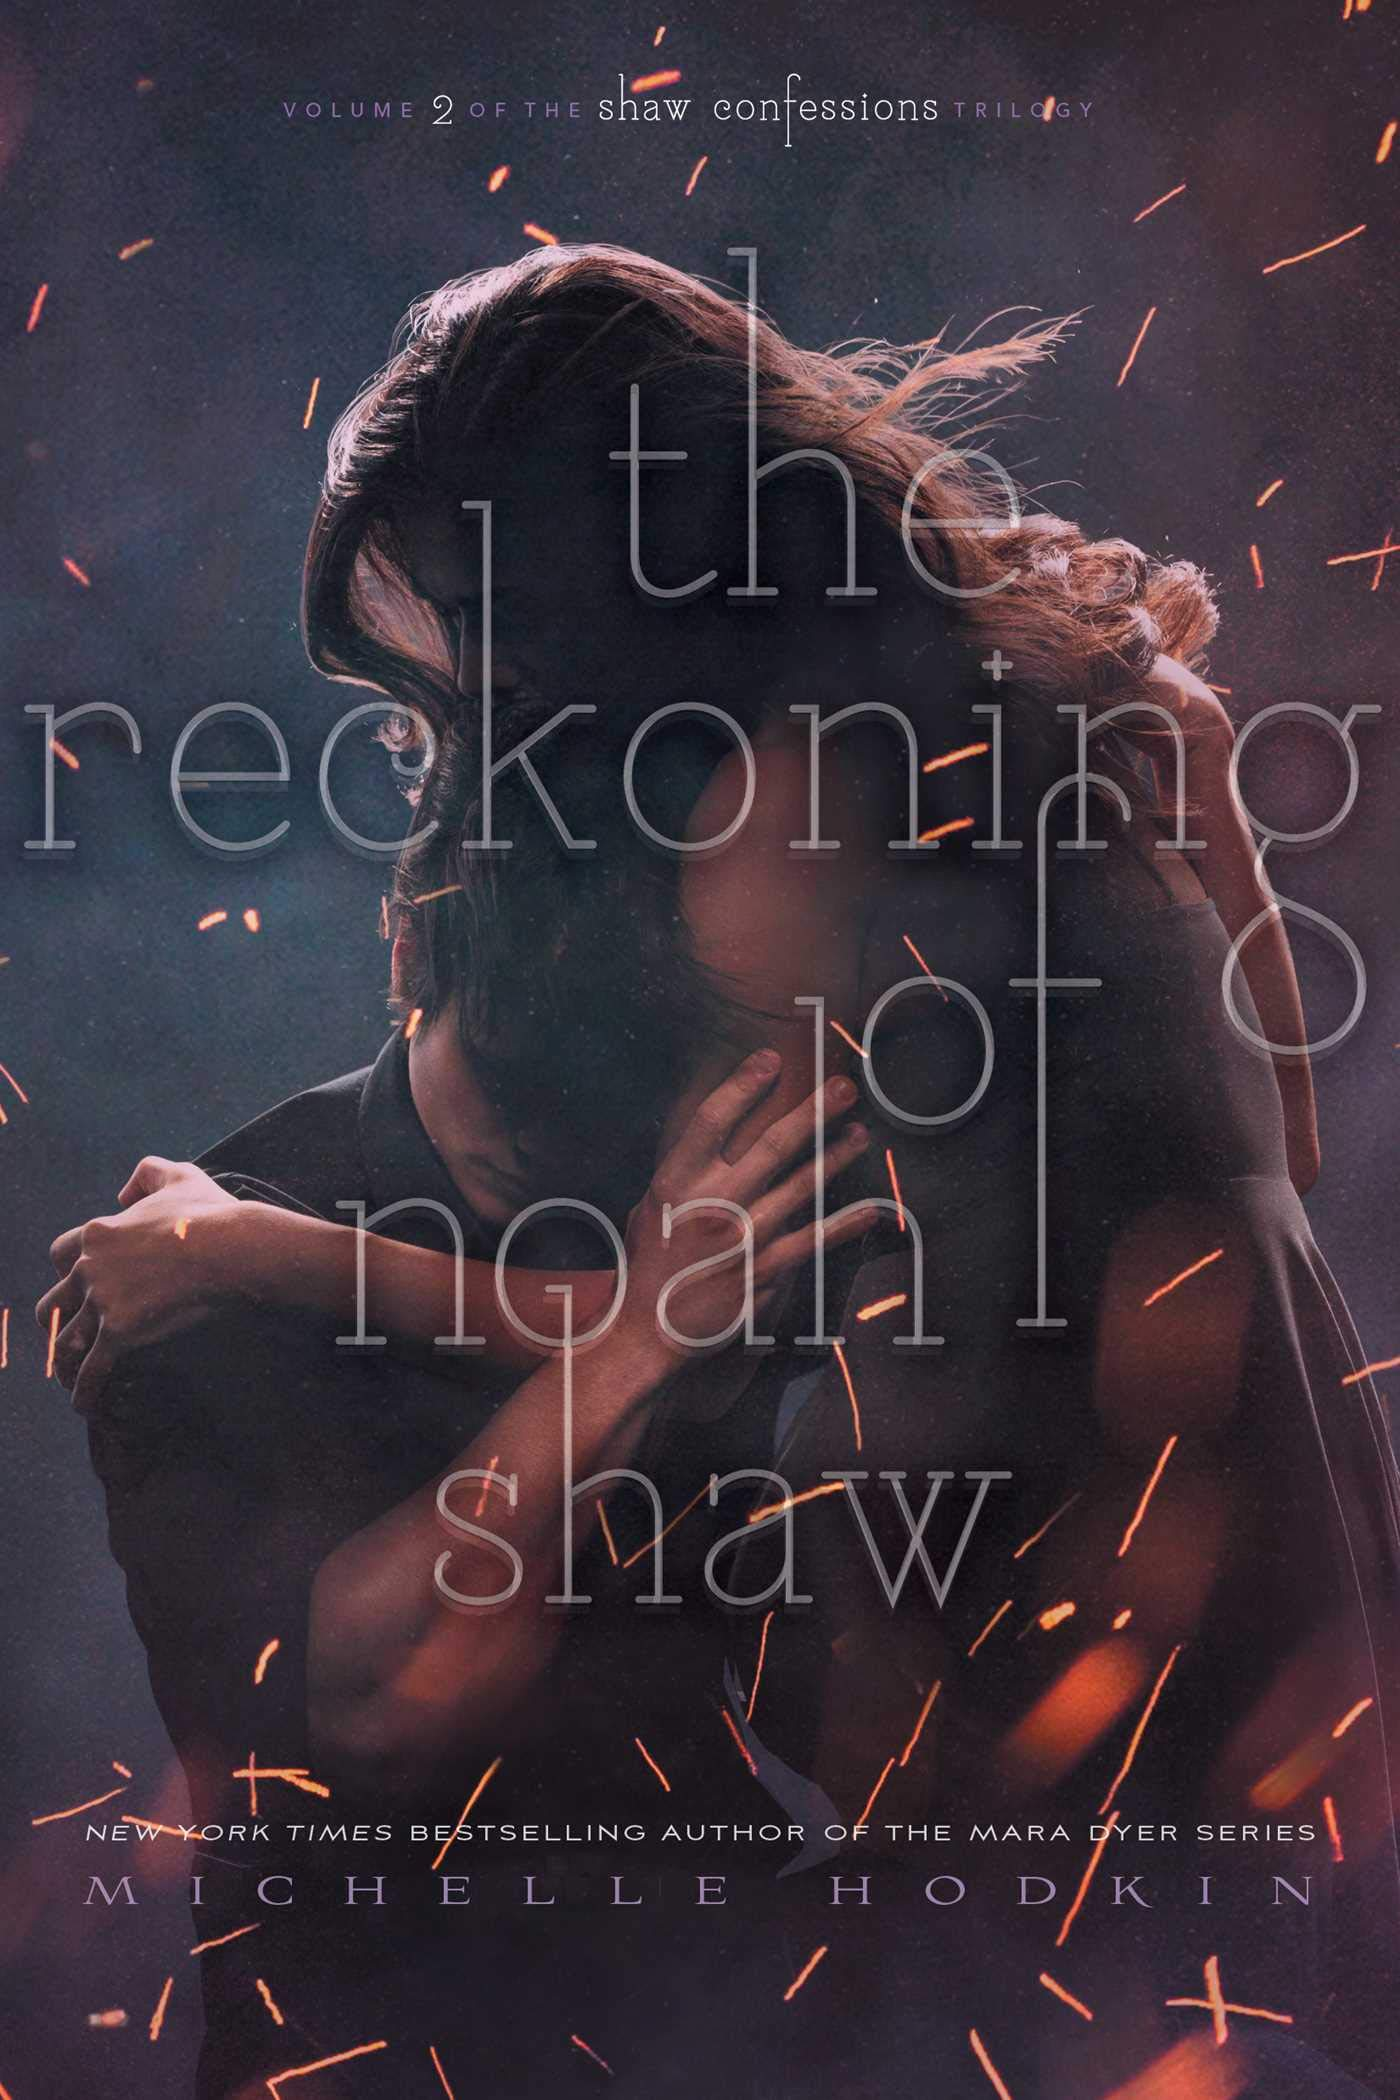 Amazon.com: The Reckoning of Noah Shaw (2) (The Shaw Confessions ...